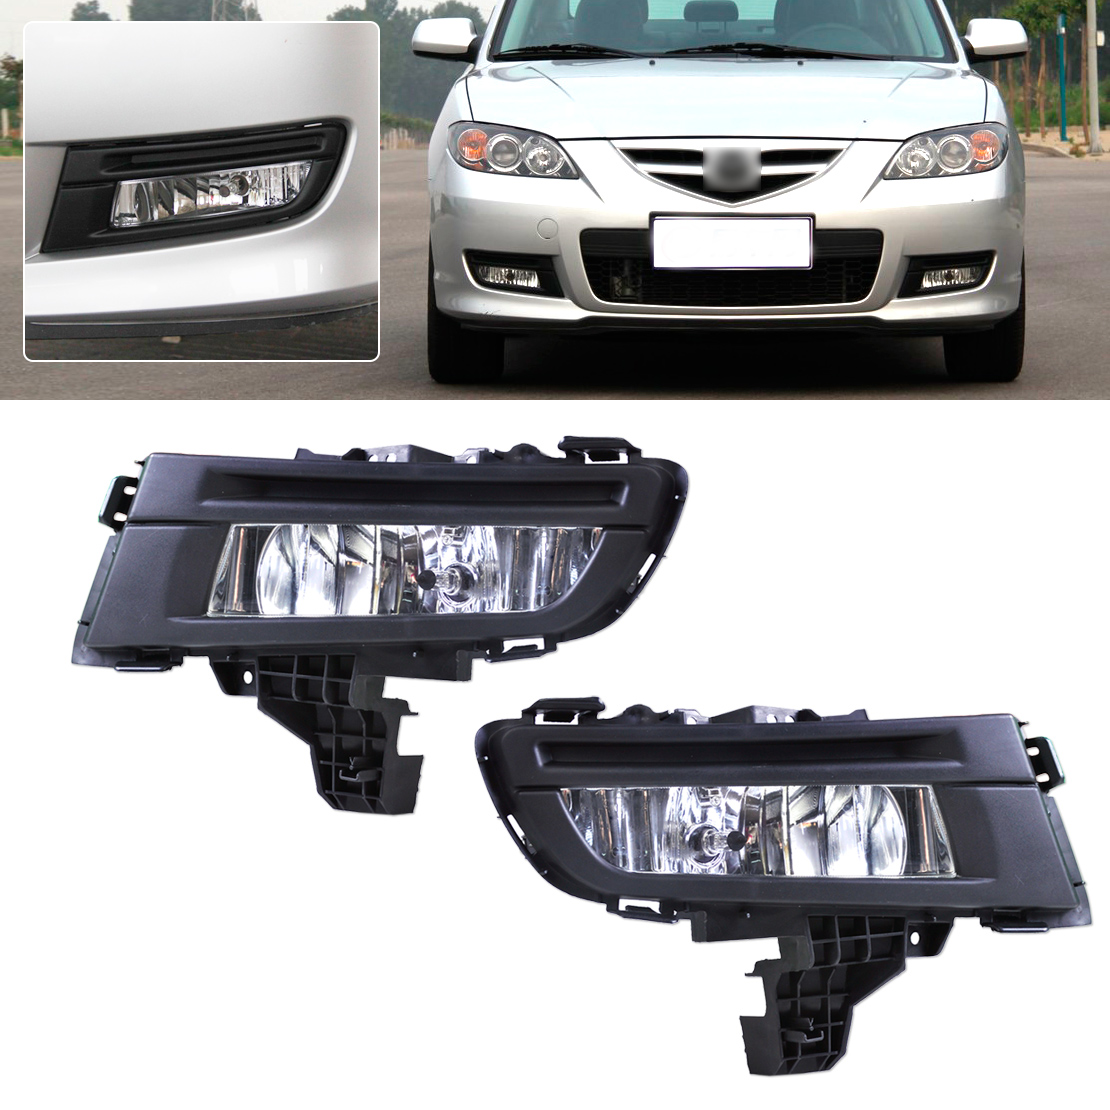 DWCX 1 Pair Front Right + Left Side Fog Light Lamp for Mazda 3 2007 2008 2009 Size approx. 29cm x 12cm 1 pcs left right fog lamp with bulbs front bumper driving fog light for suzuki alto 2009 2017